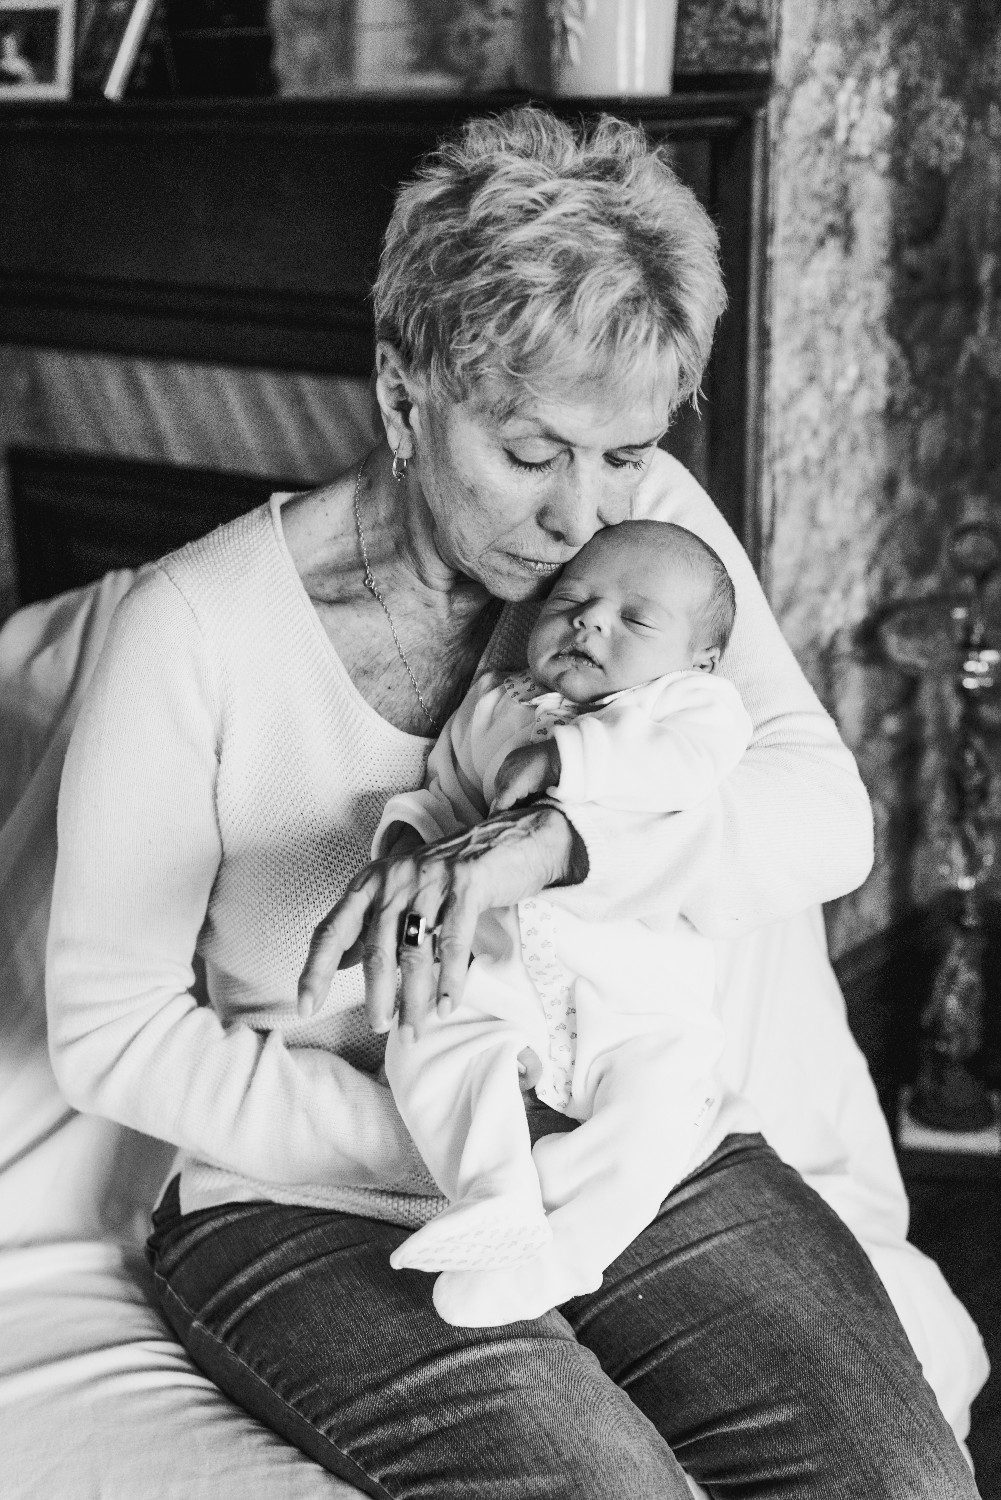 Grandmother and Grandson Newborn Portraits